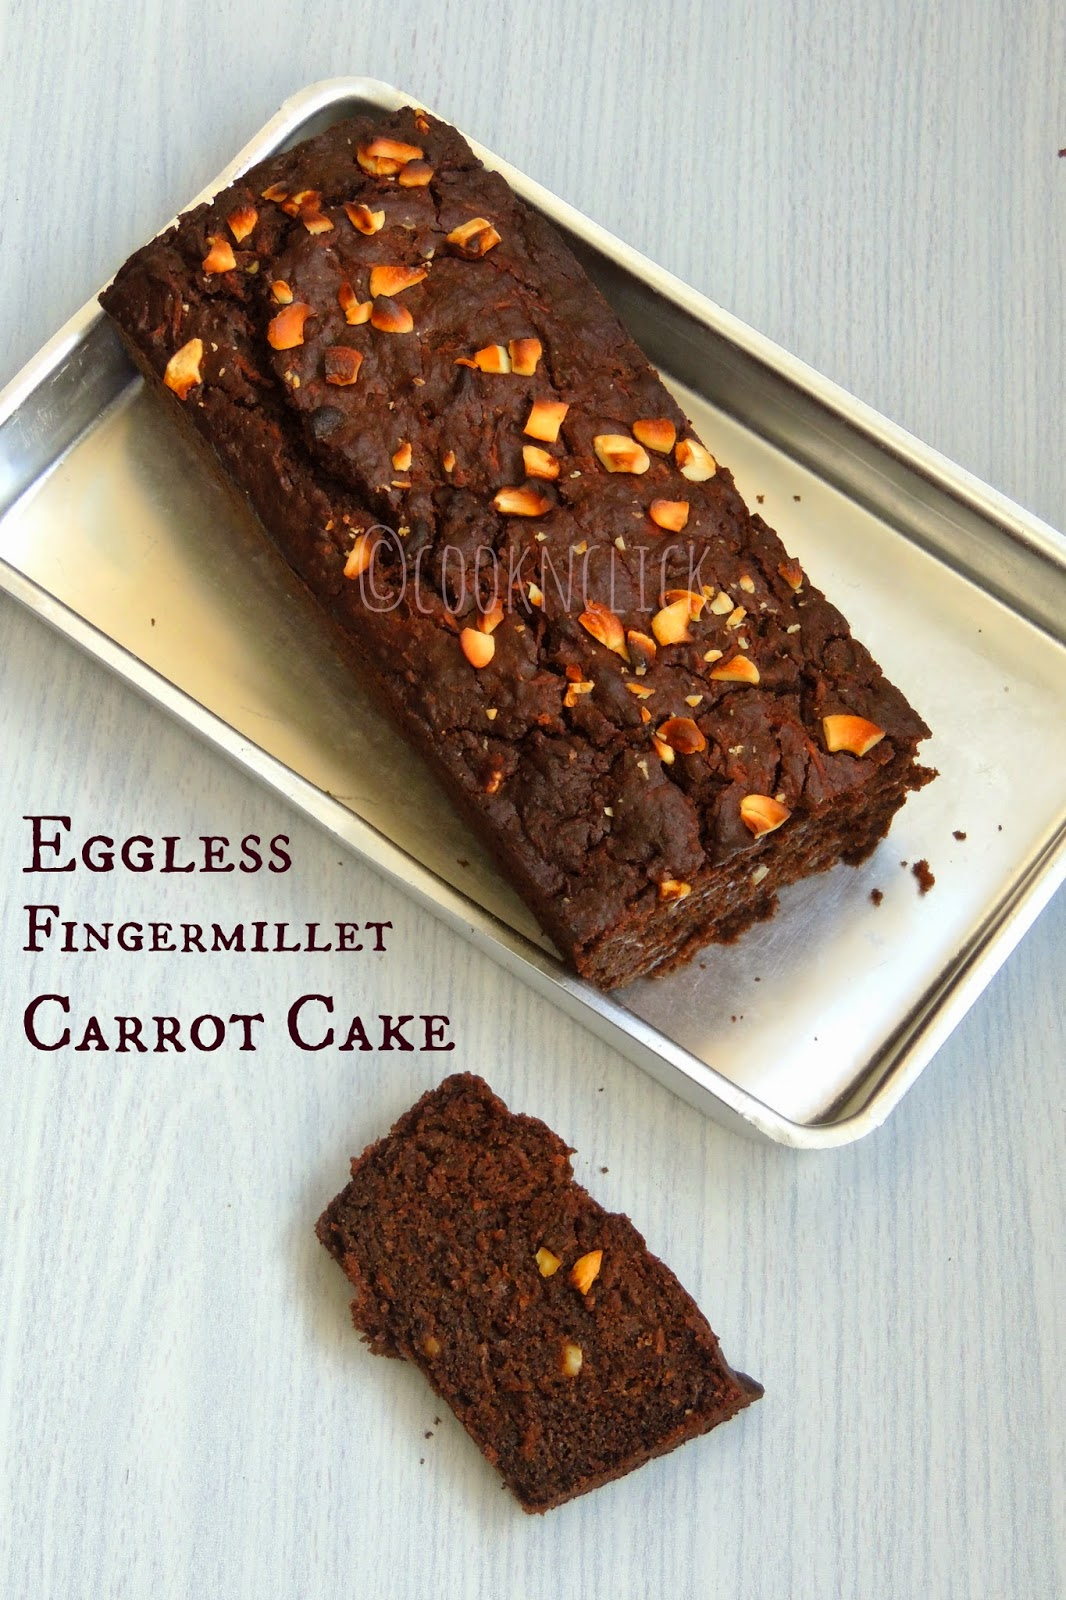 Eggless Ragi Carrot Cashew Cake/Eggless Fingermillet Cake with Palm Jaggery Syrup